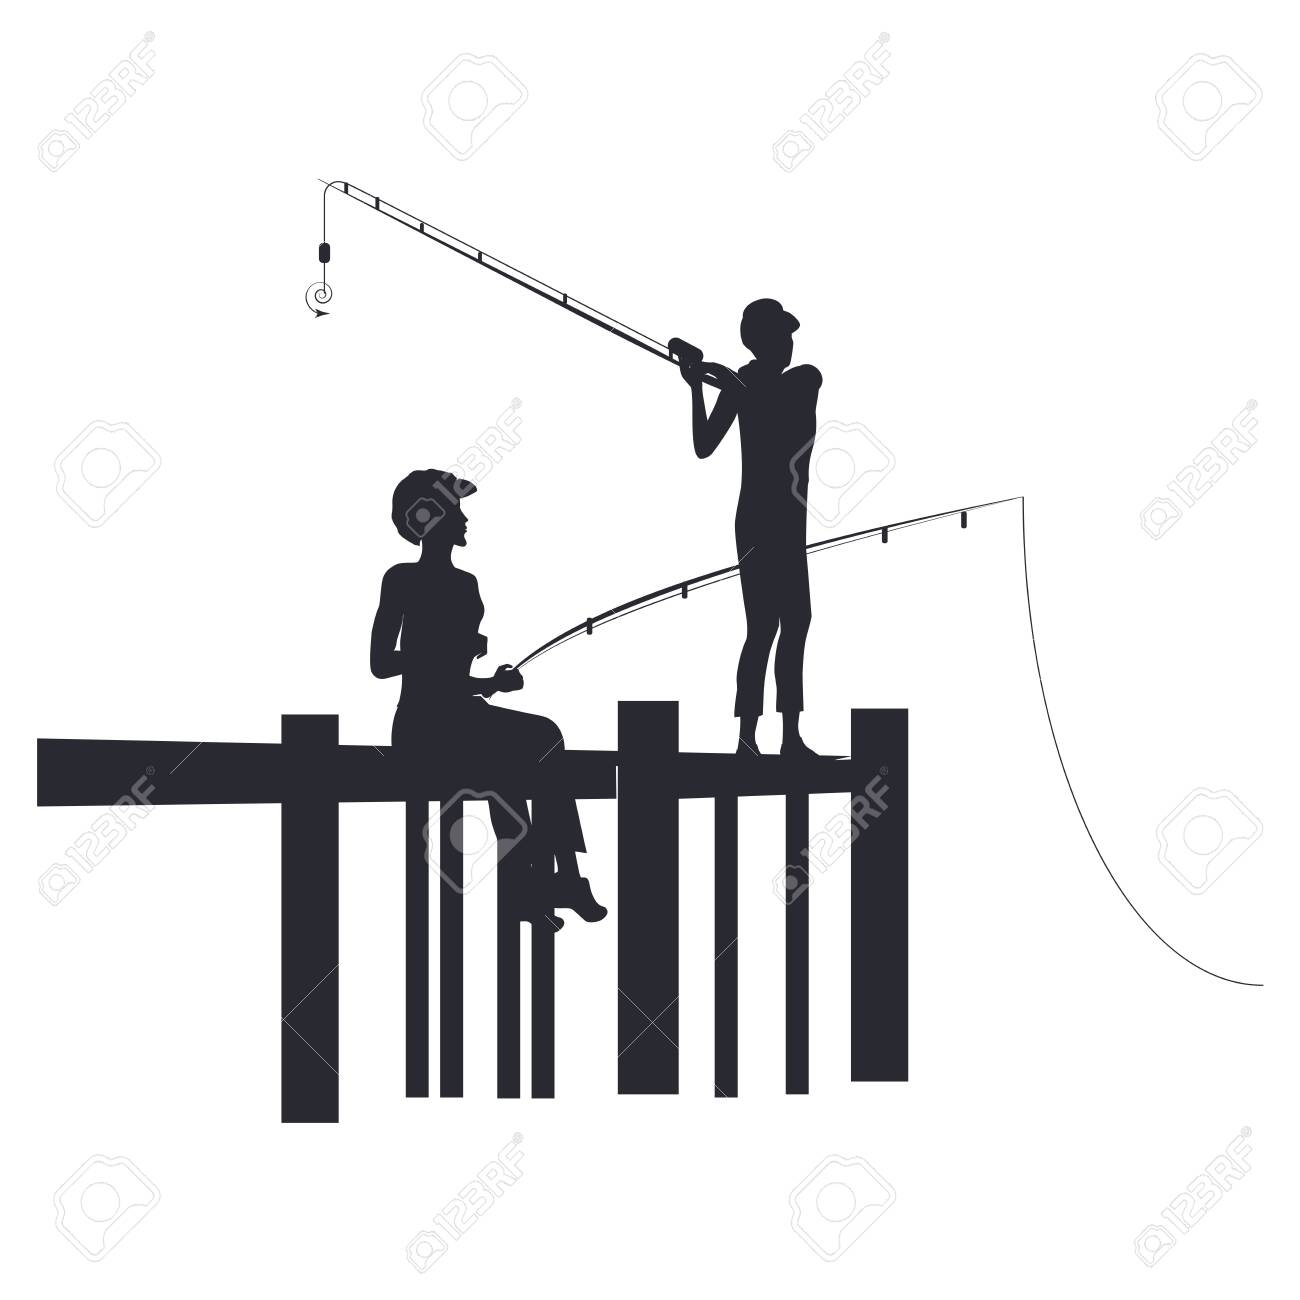 Fishing Two Silhouettes Of Girls With Fishing Poles On The Royalty Free Cliparts Vectors And Stock Illustration Image 131481261